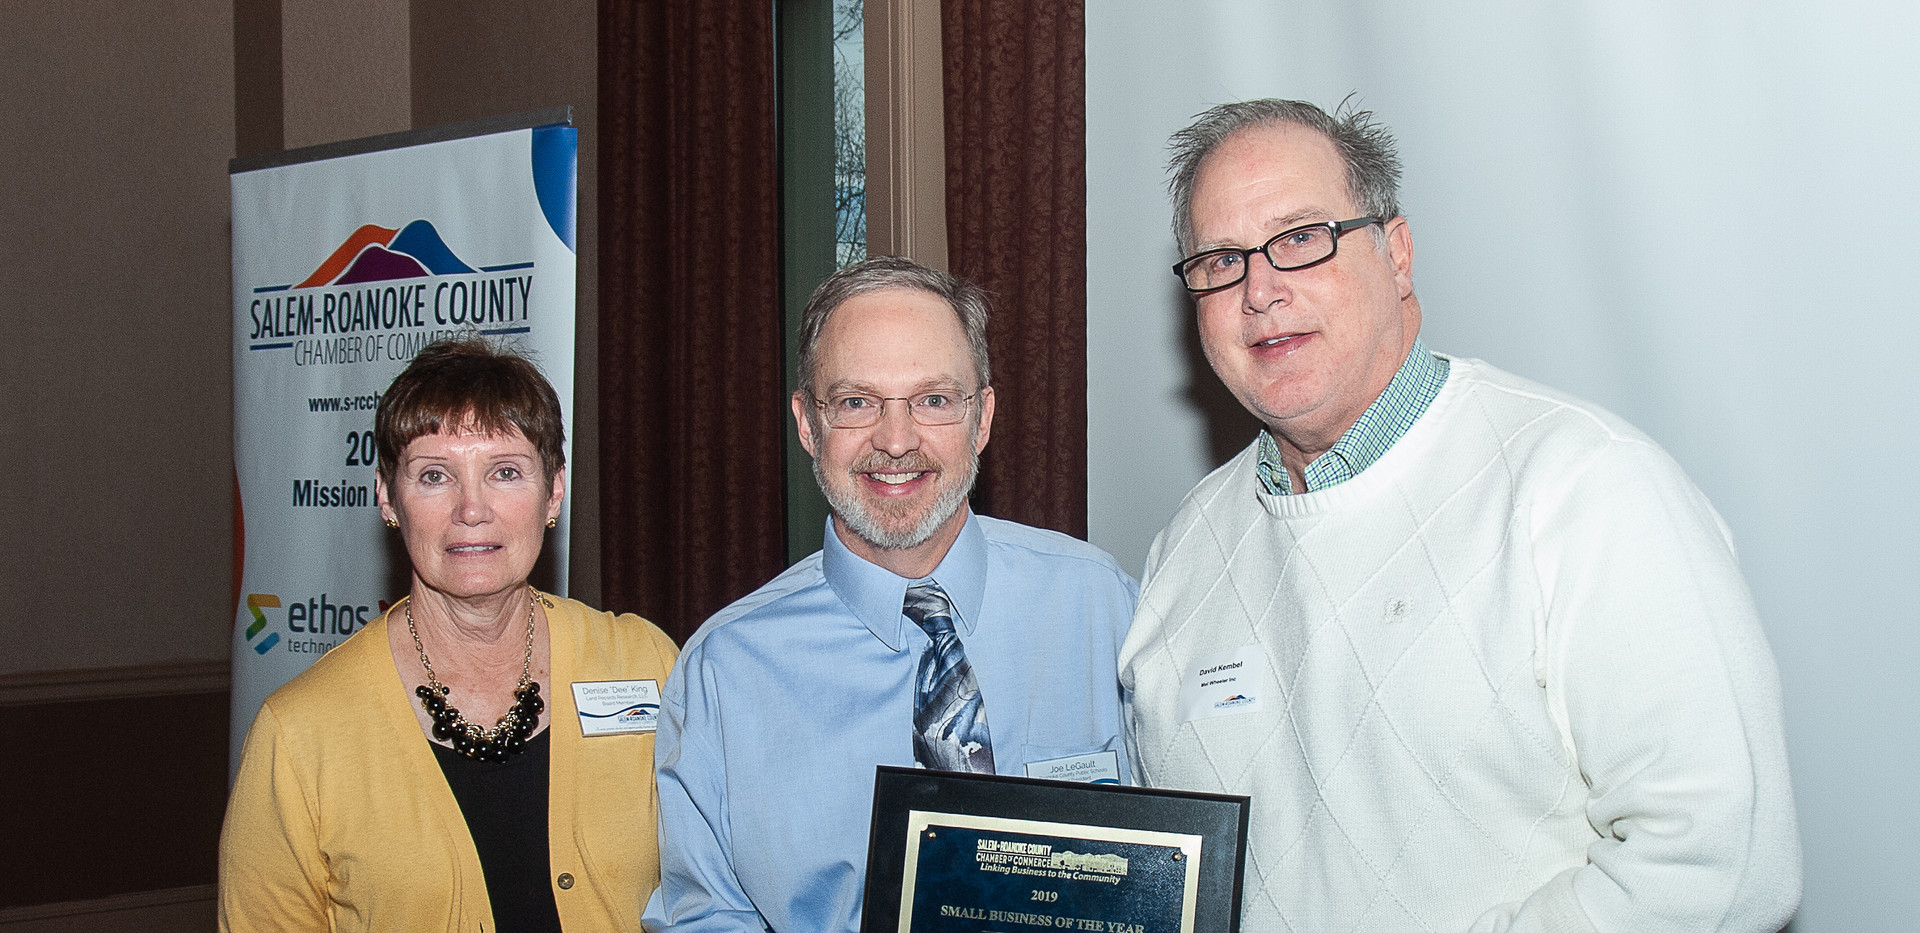 small business of the year pic 1.jpg